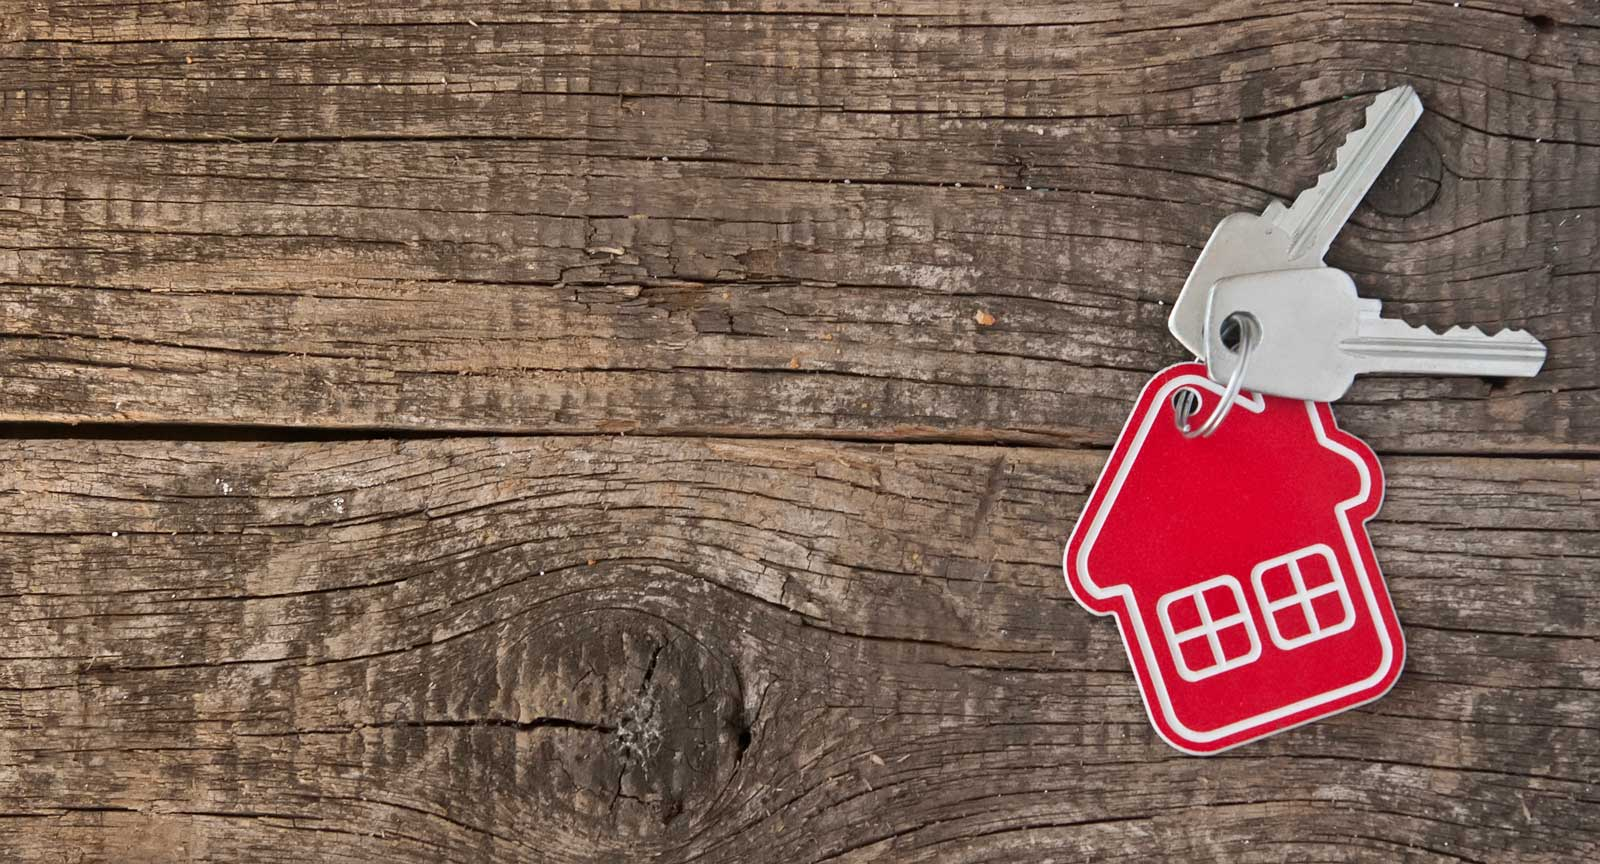 Symbol-of-the-house-with-silver-key-Stock-Image-Web